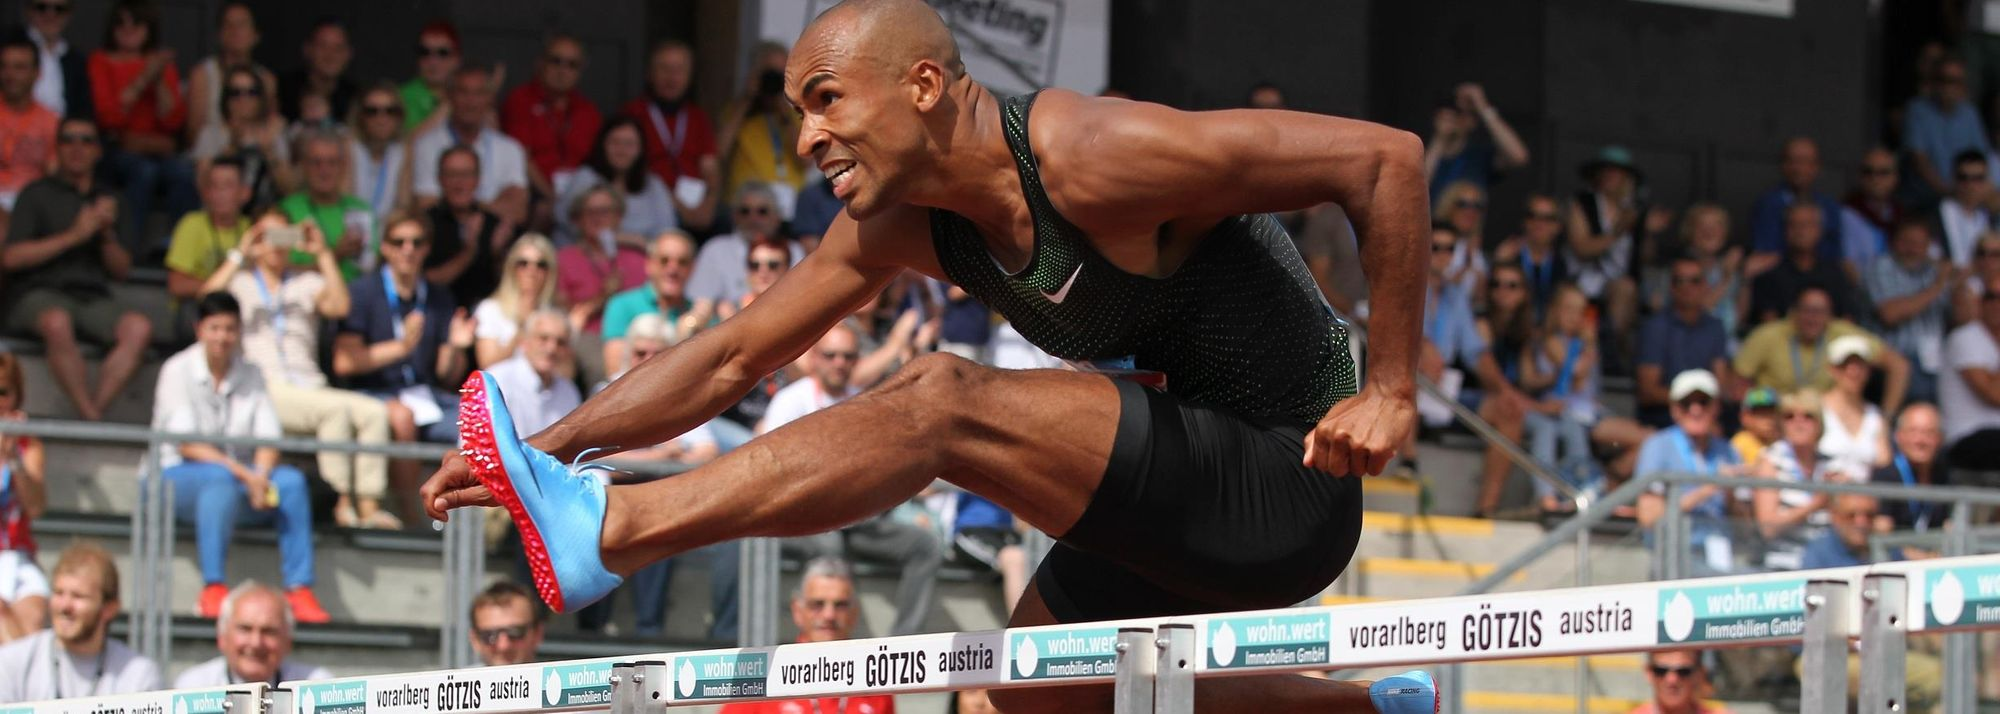 All three decathlon medallists from 2019 World Championships set to compete